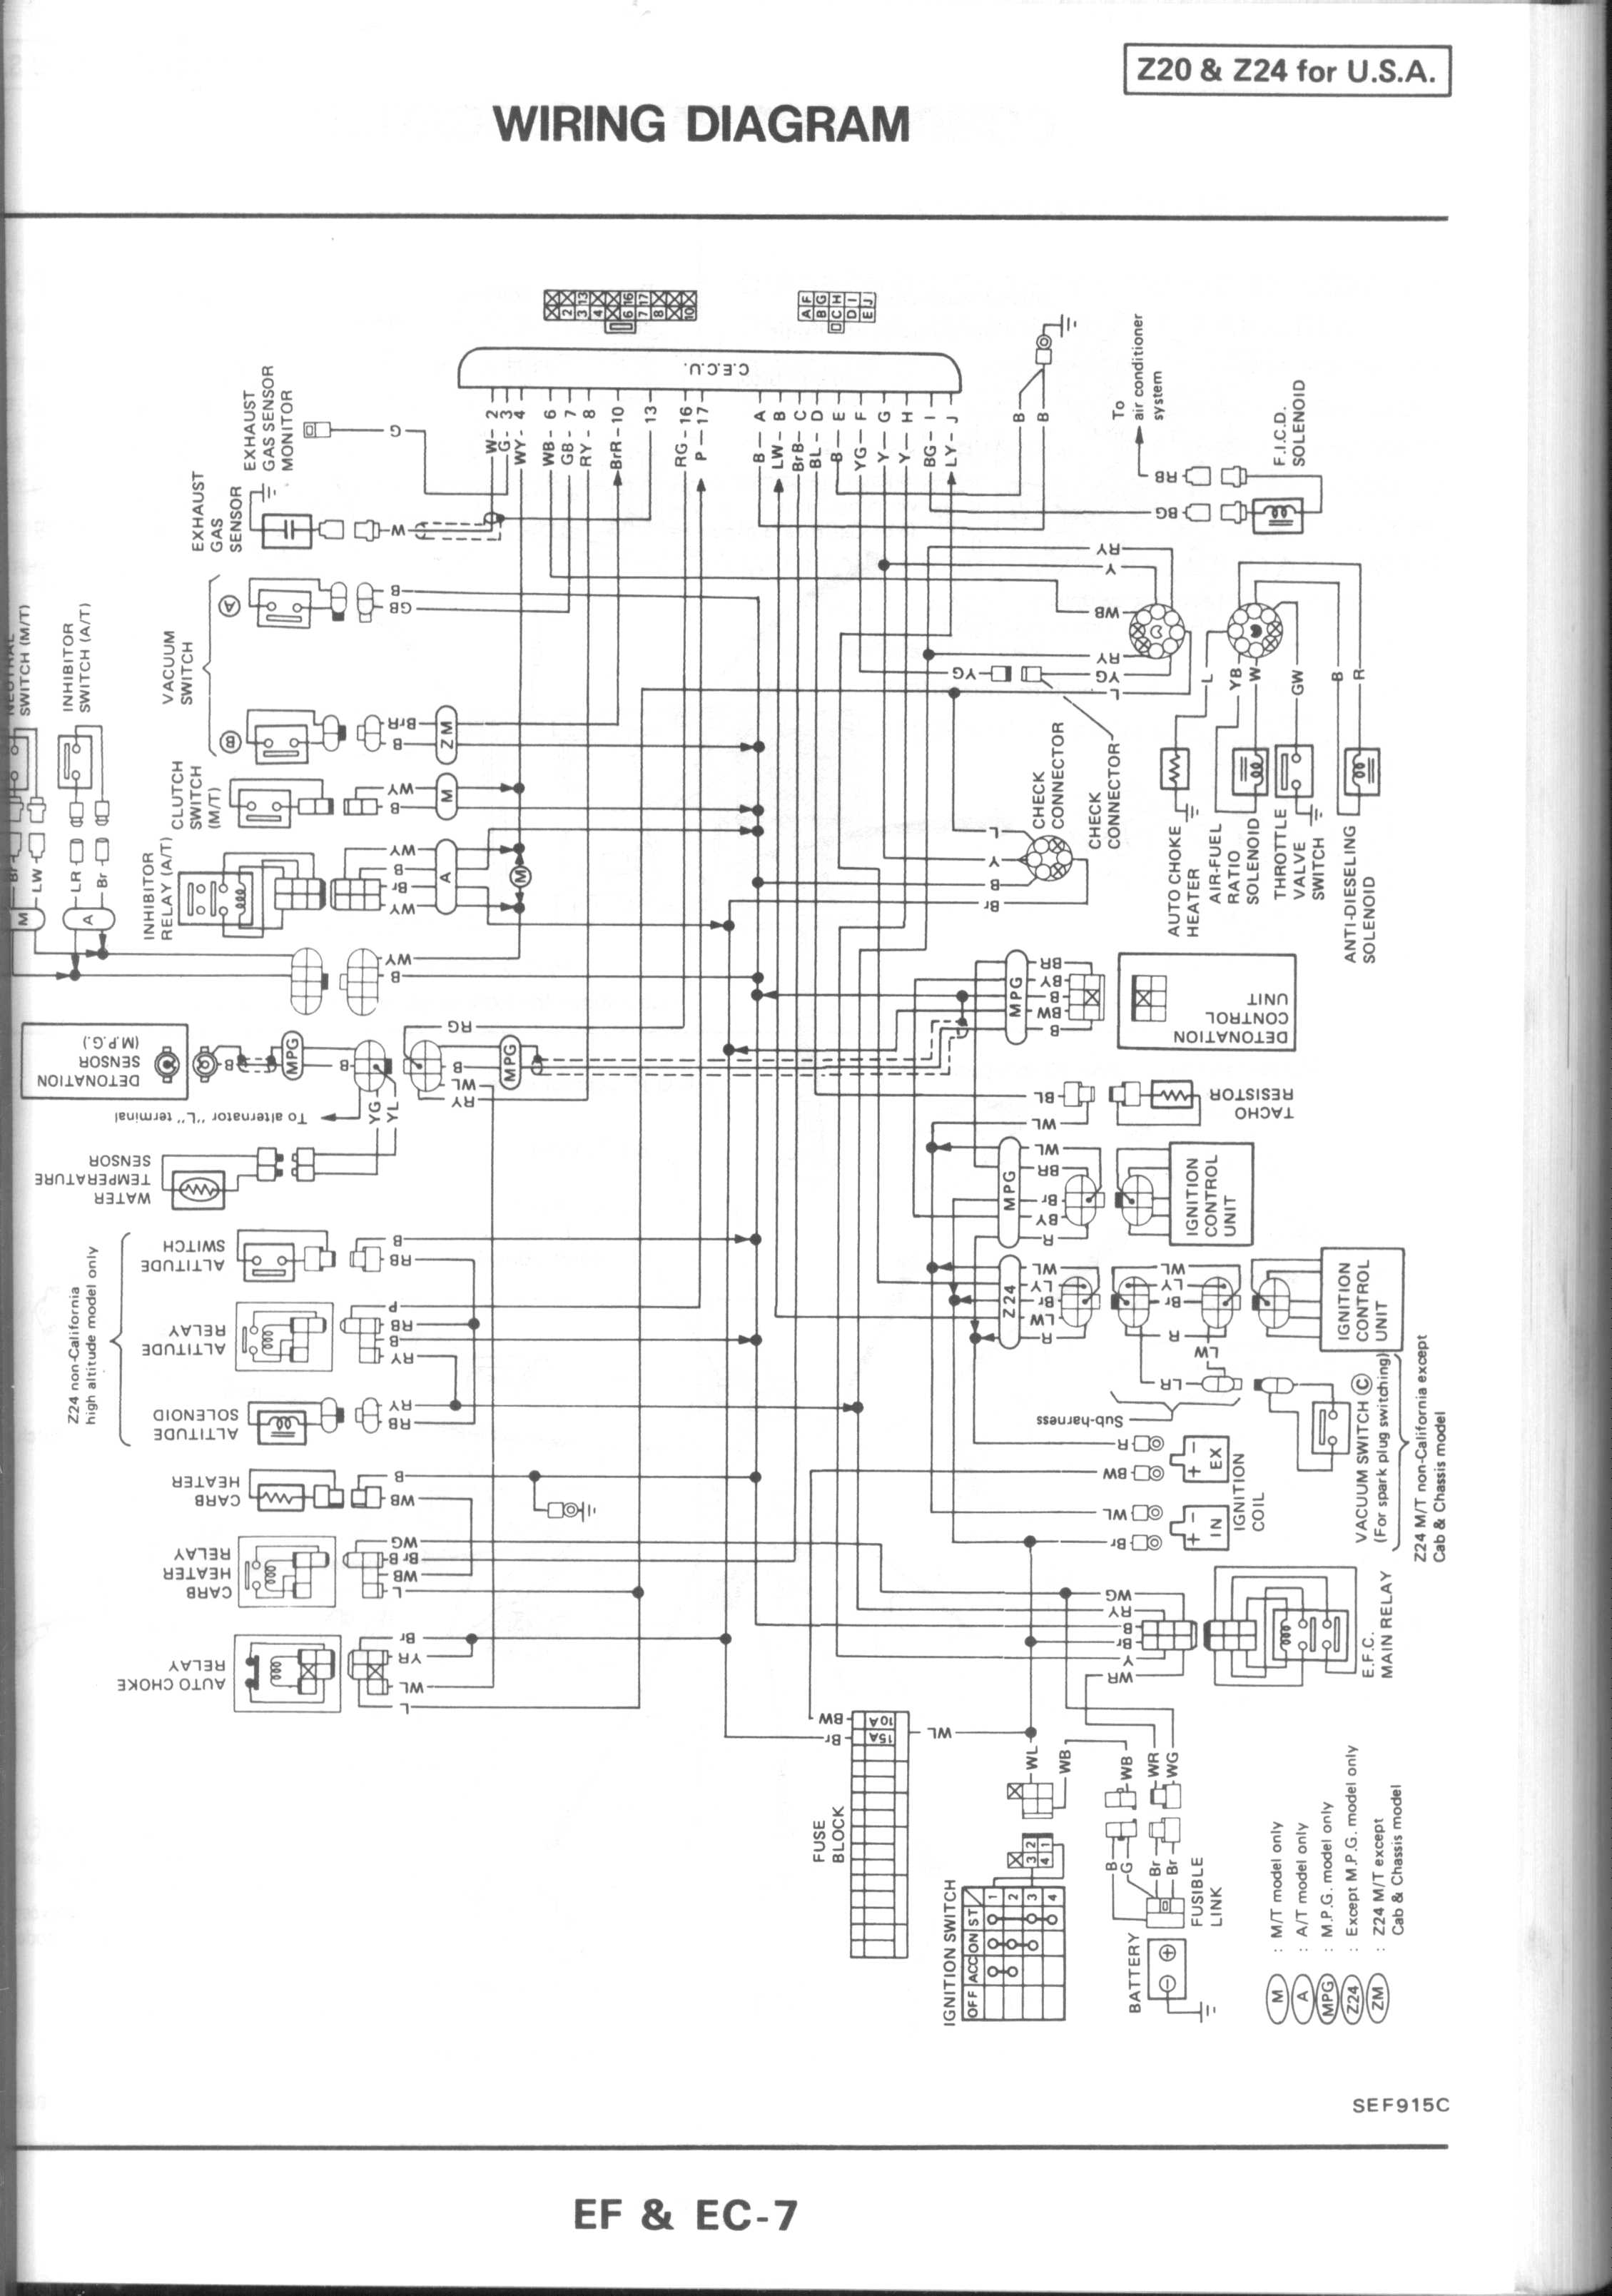 720_z24_ecu_wiring nissan nut 1986 nissan pickup truck wiring diagram at aneh.co